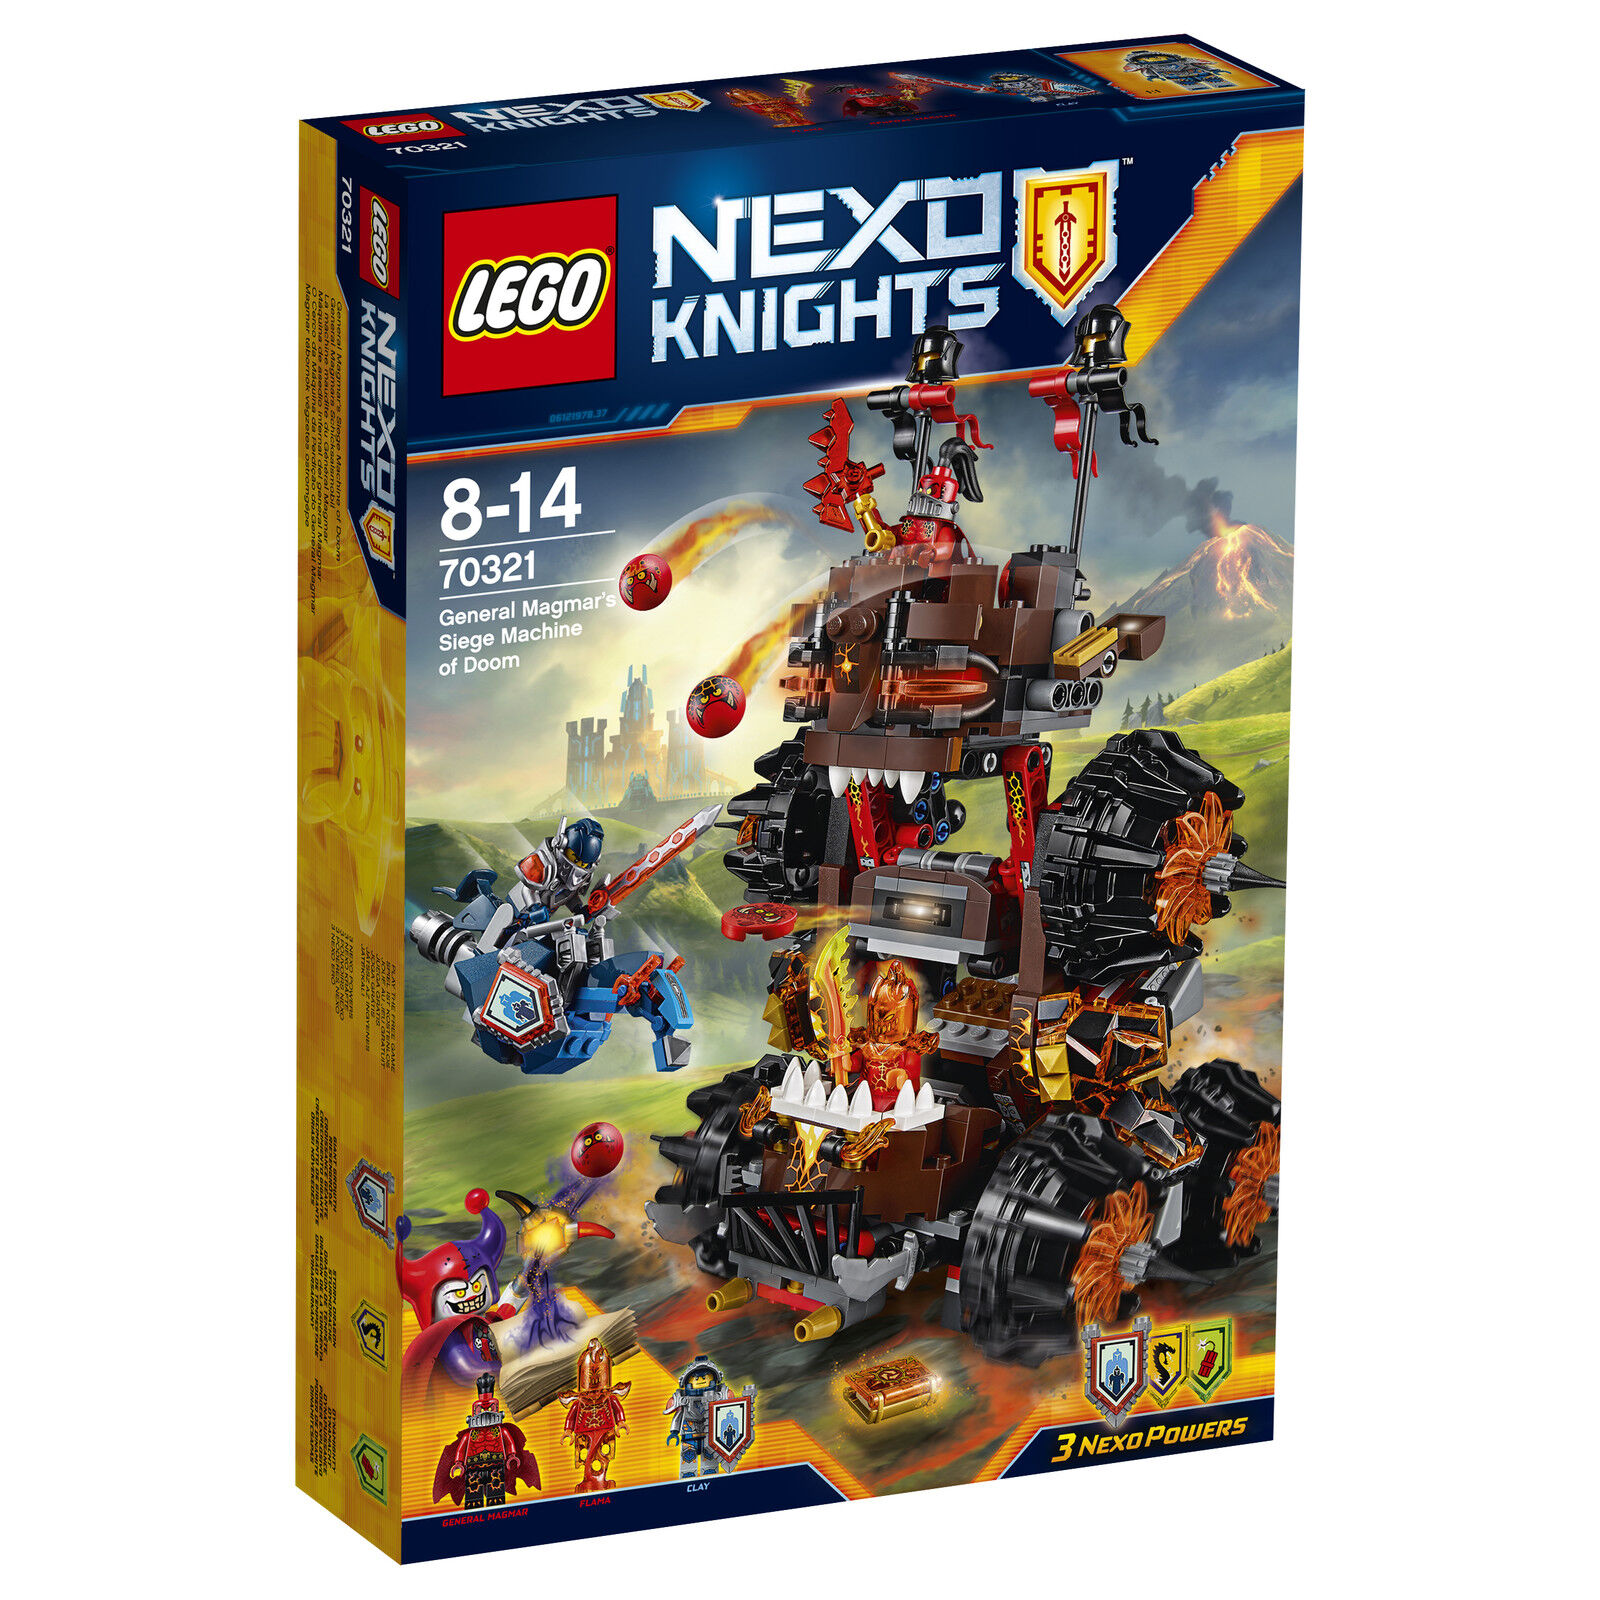 LEGO ® Nexo Knights ™ 70321 generale magmars destino mobile NUOVO OVP NEW MISB NRFB